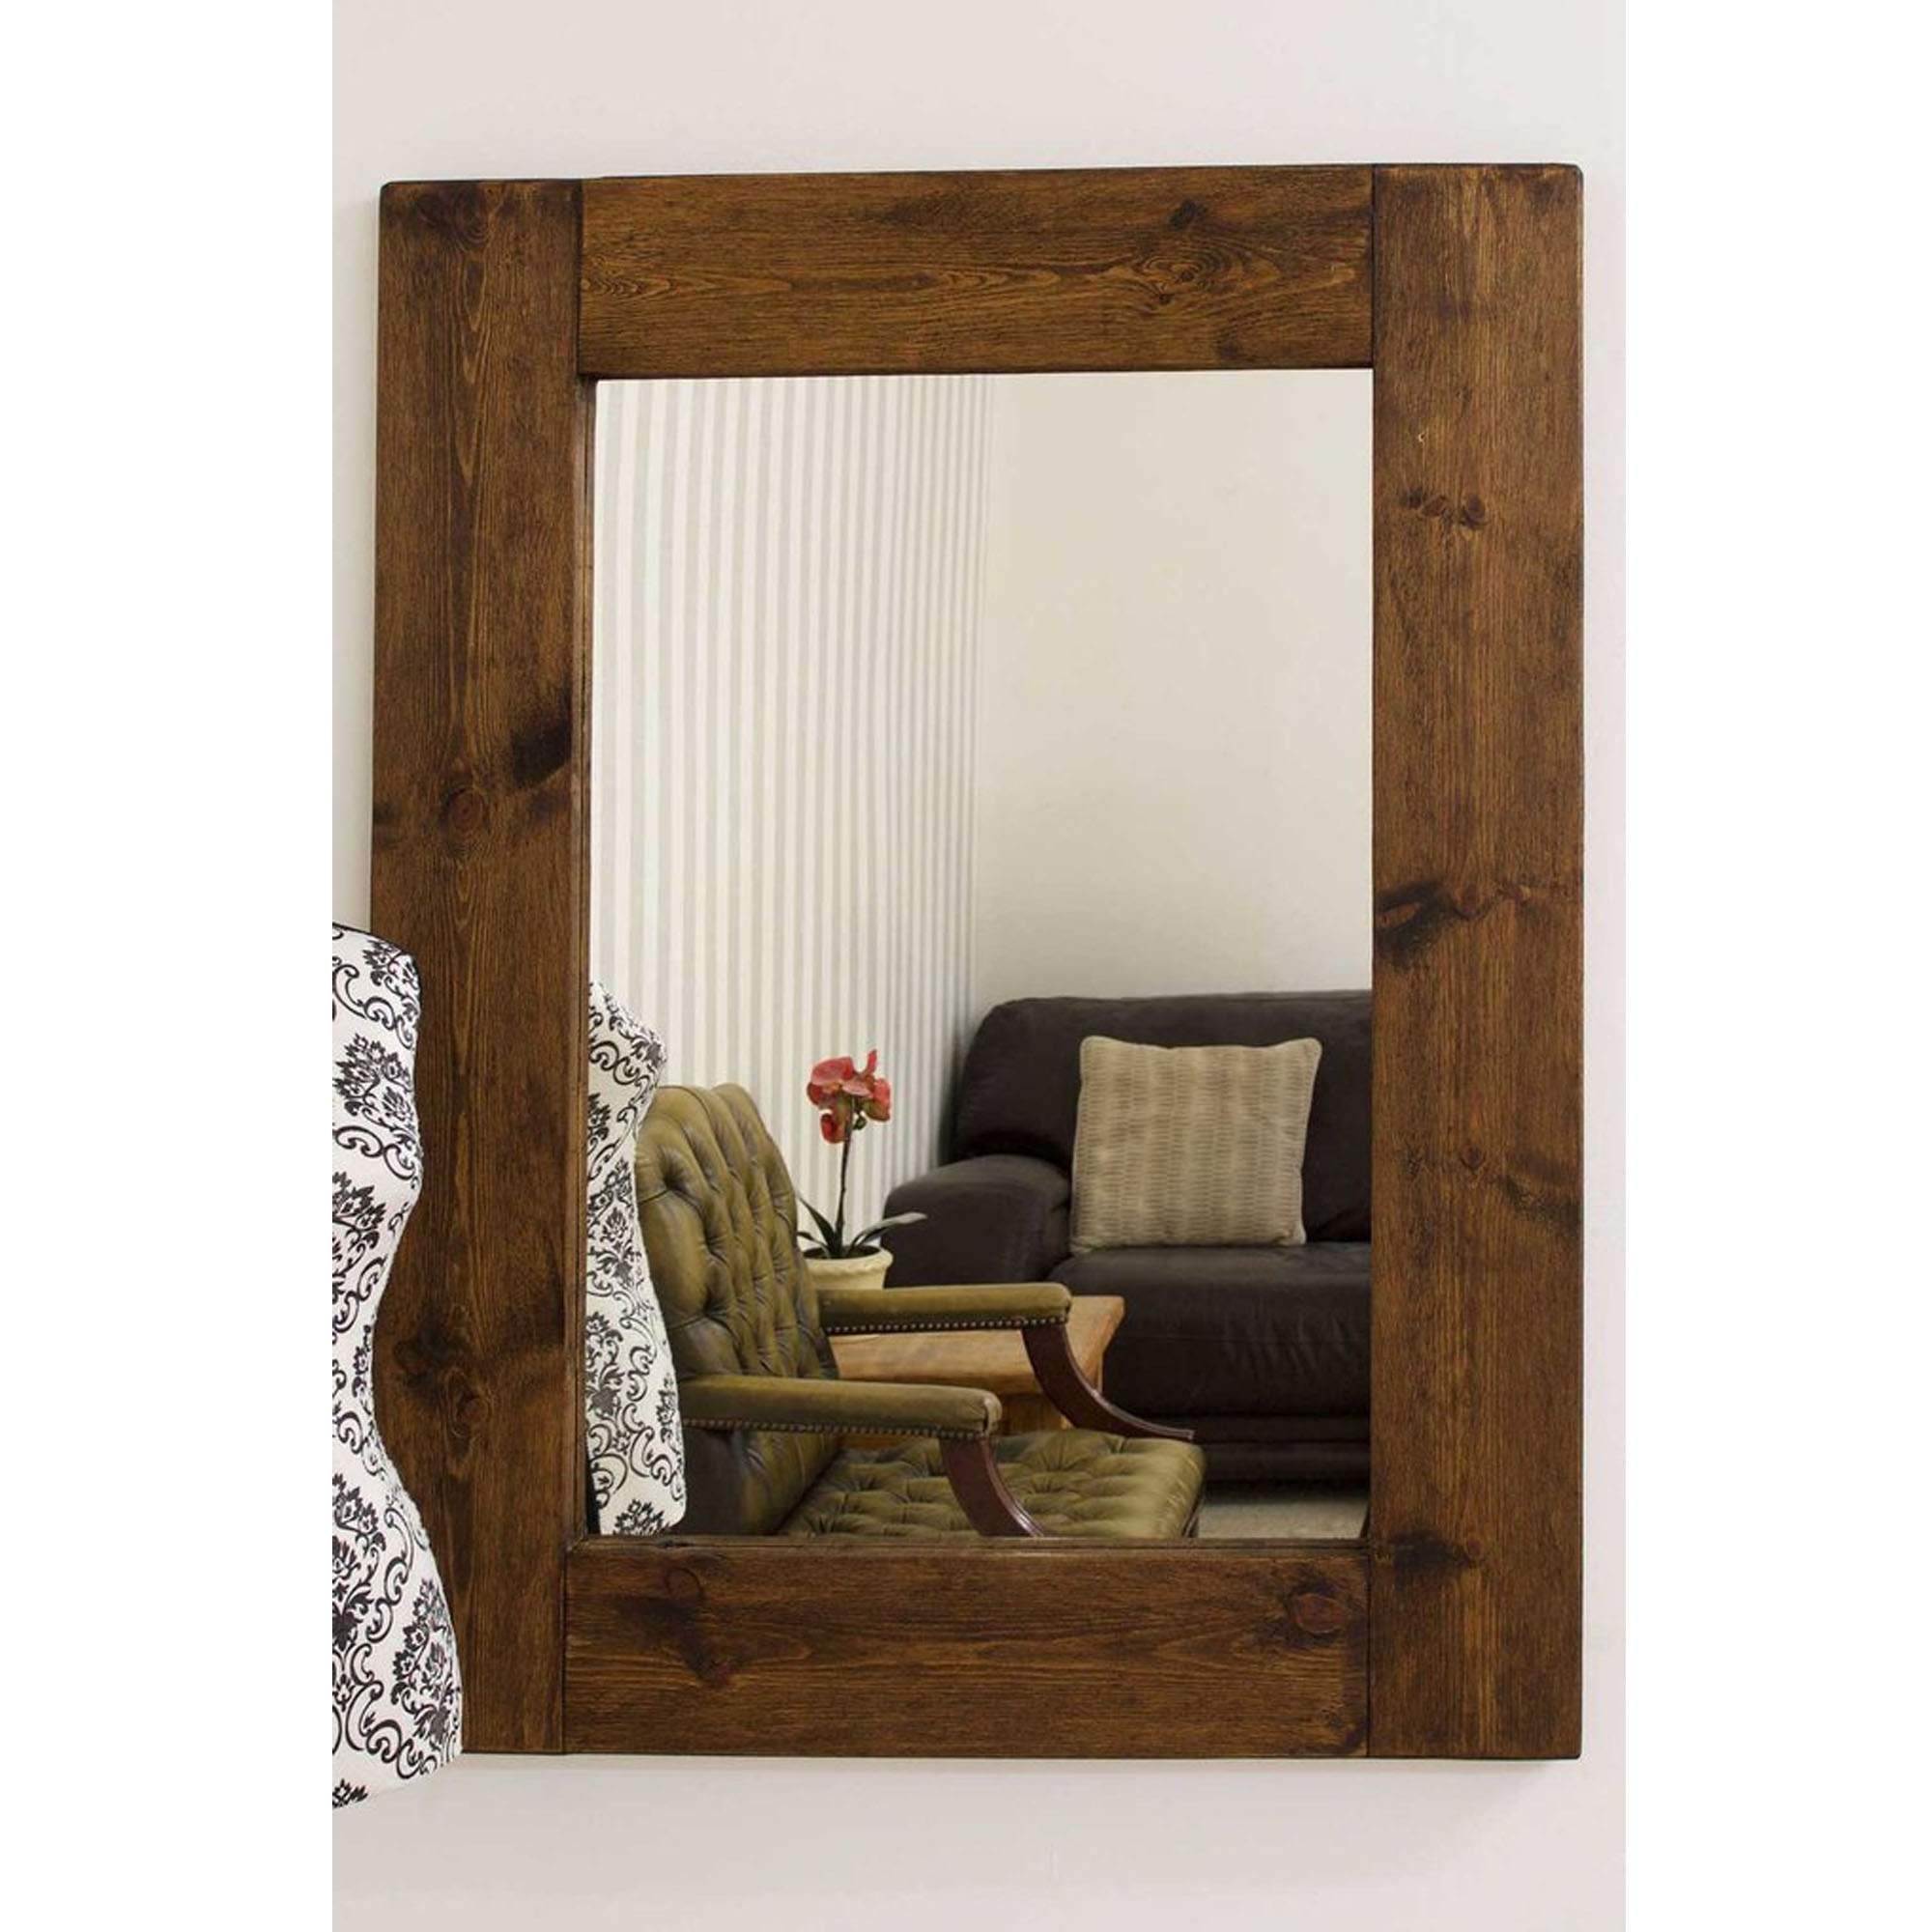 Rustic country house wall mirror